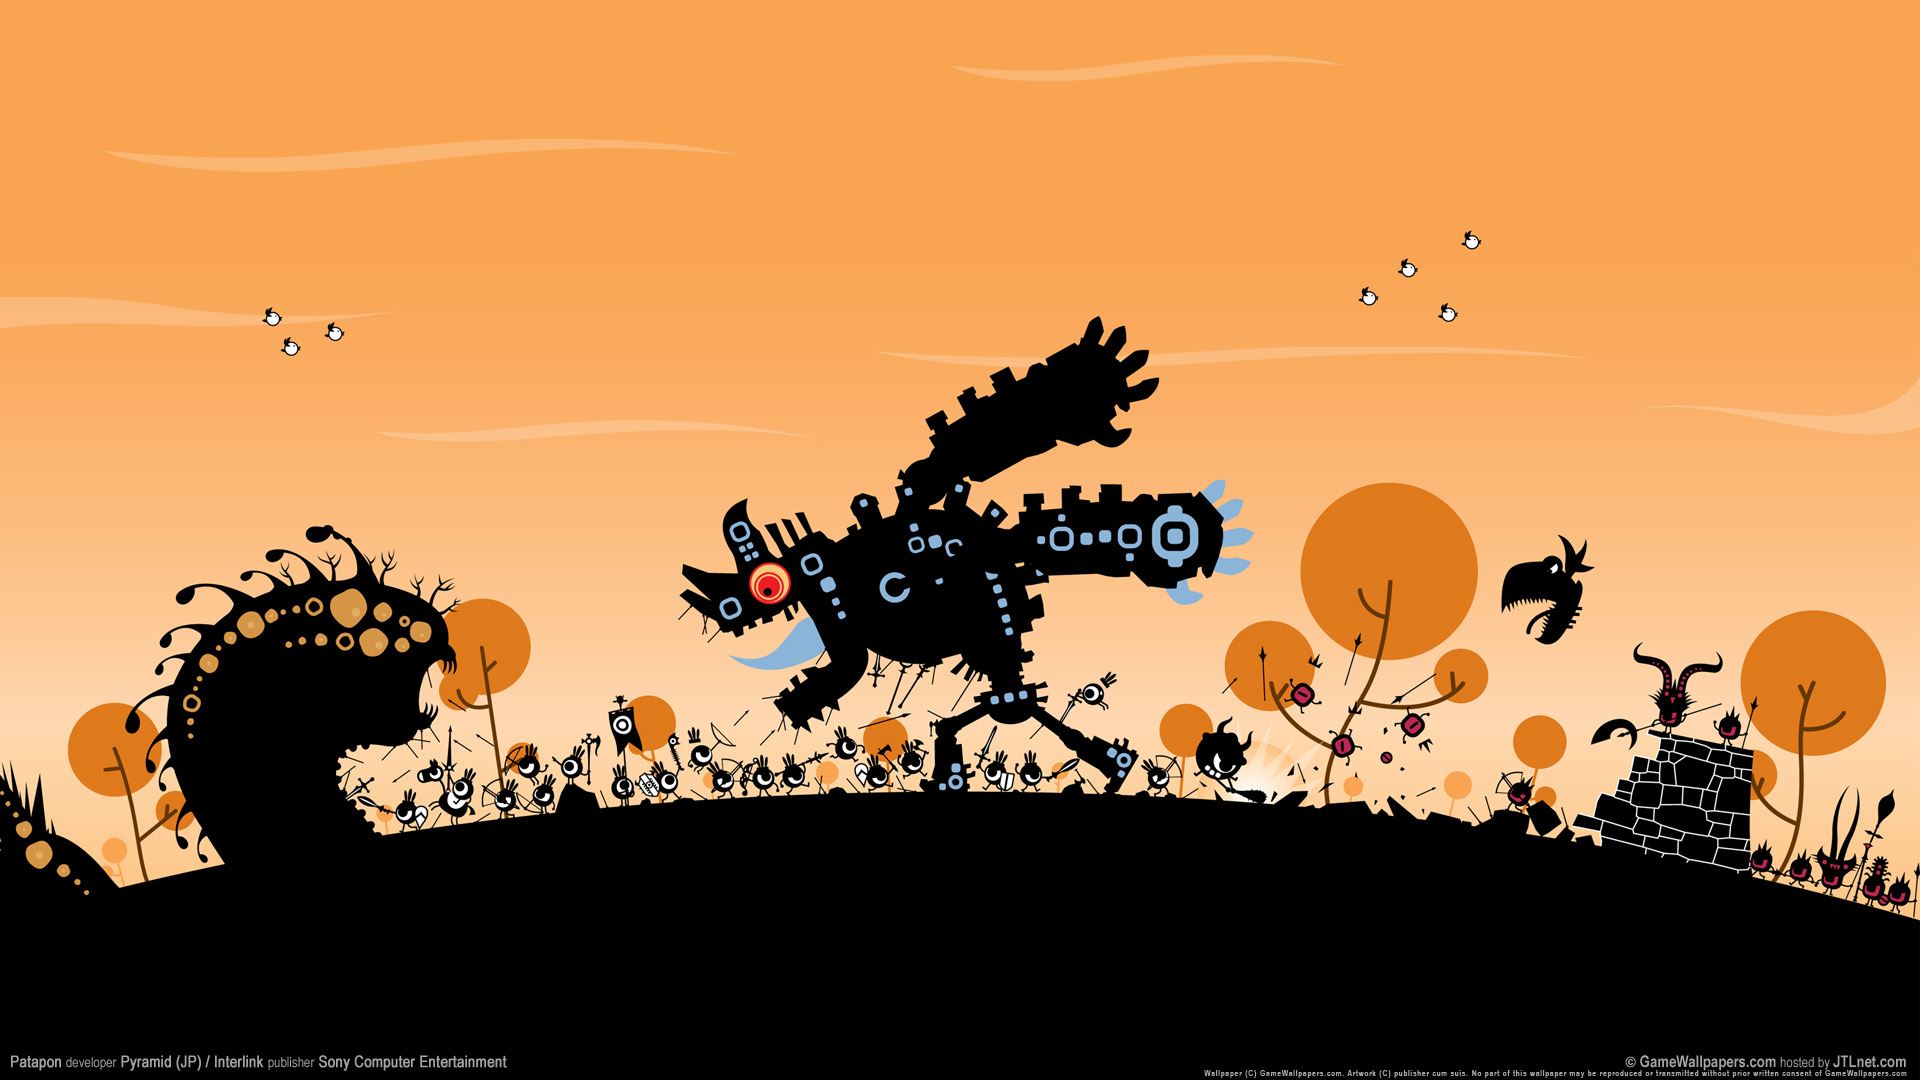 HD Wallpapers Patapon Game